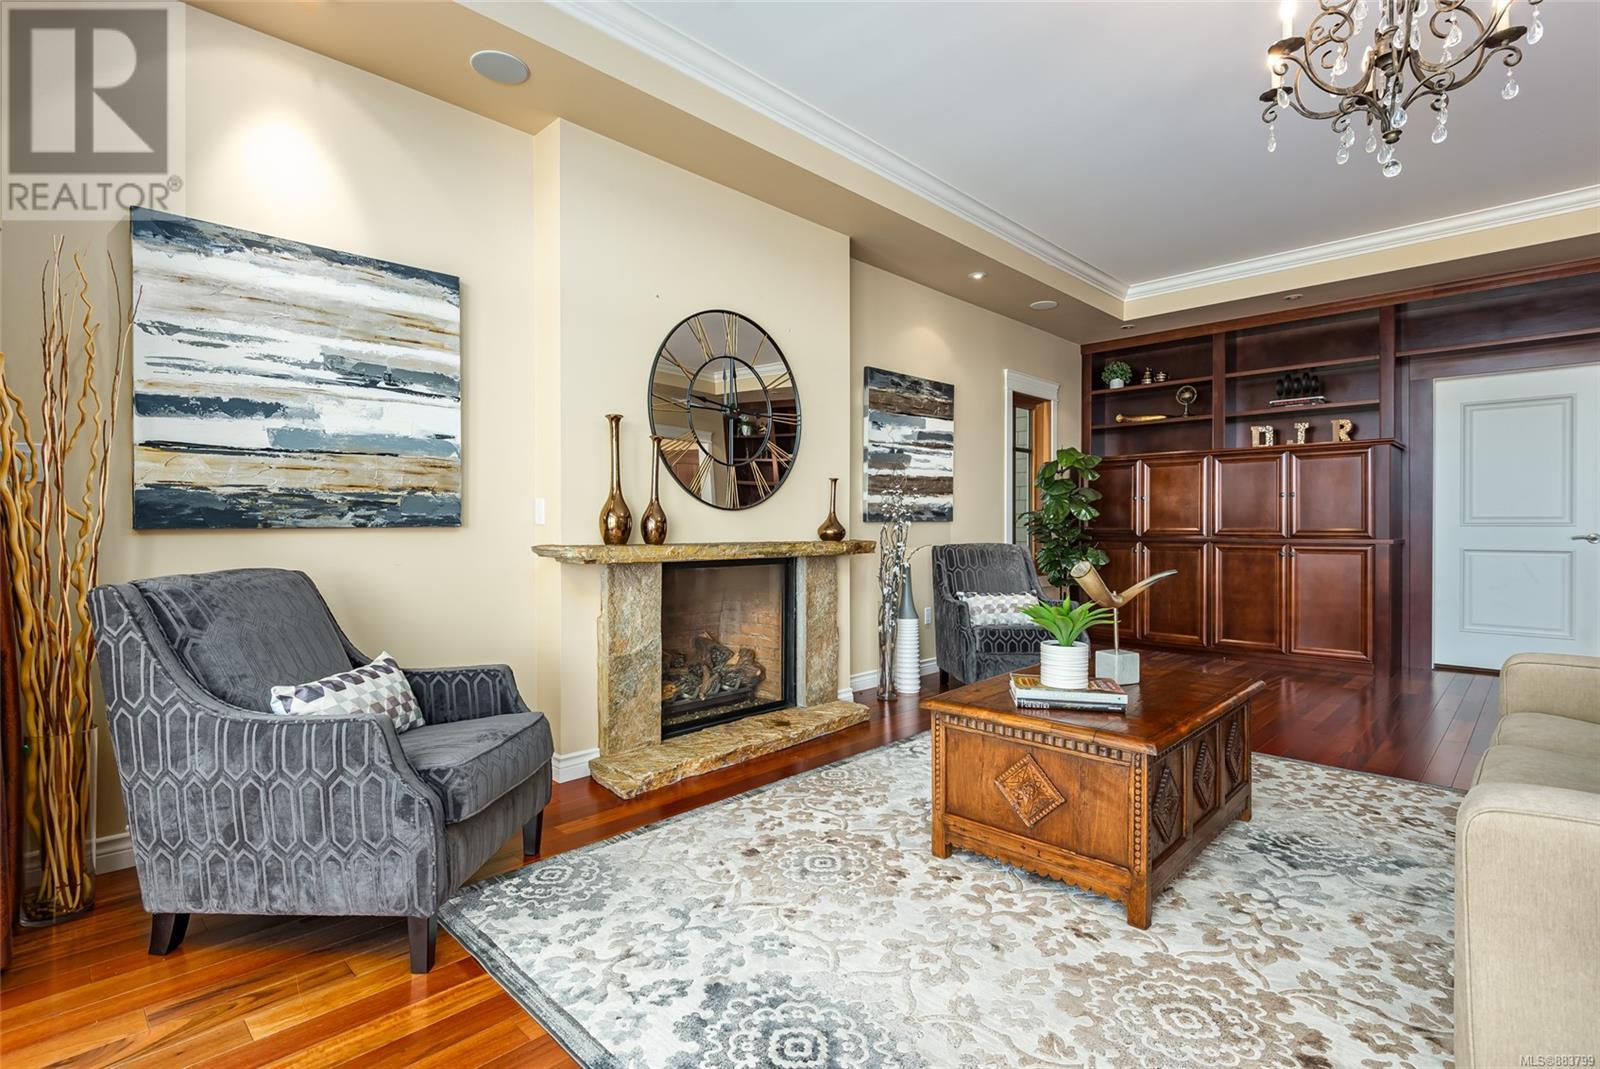 MLS® #883799 - Courtenay House For sale Image #30